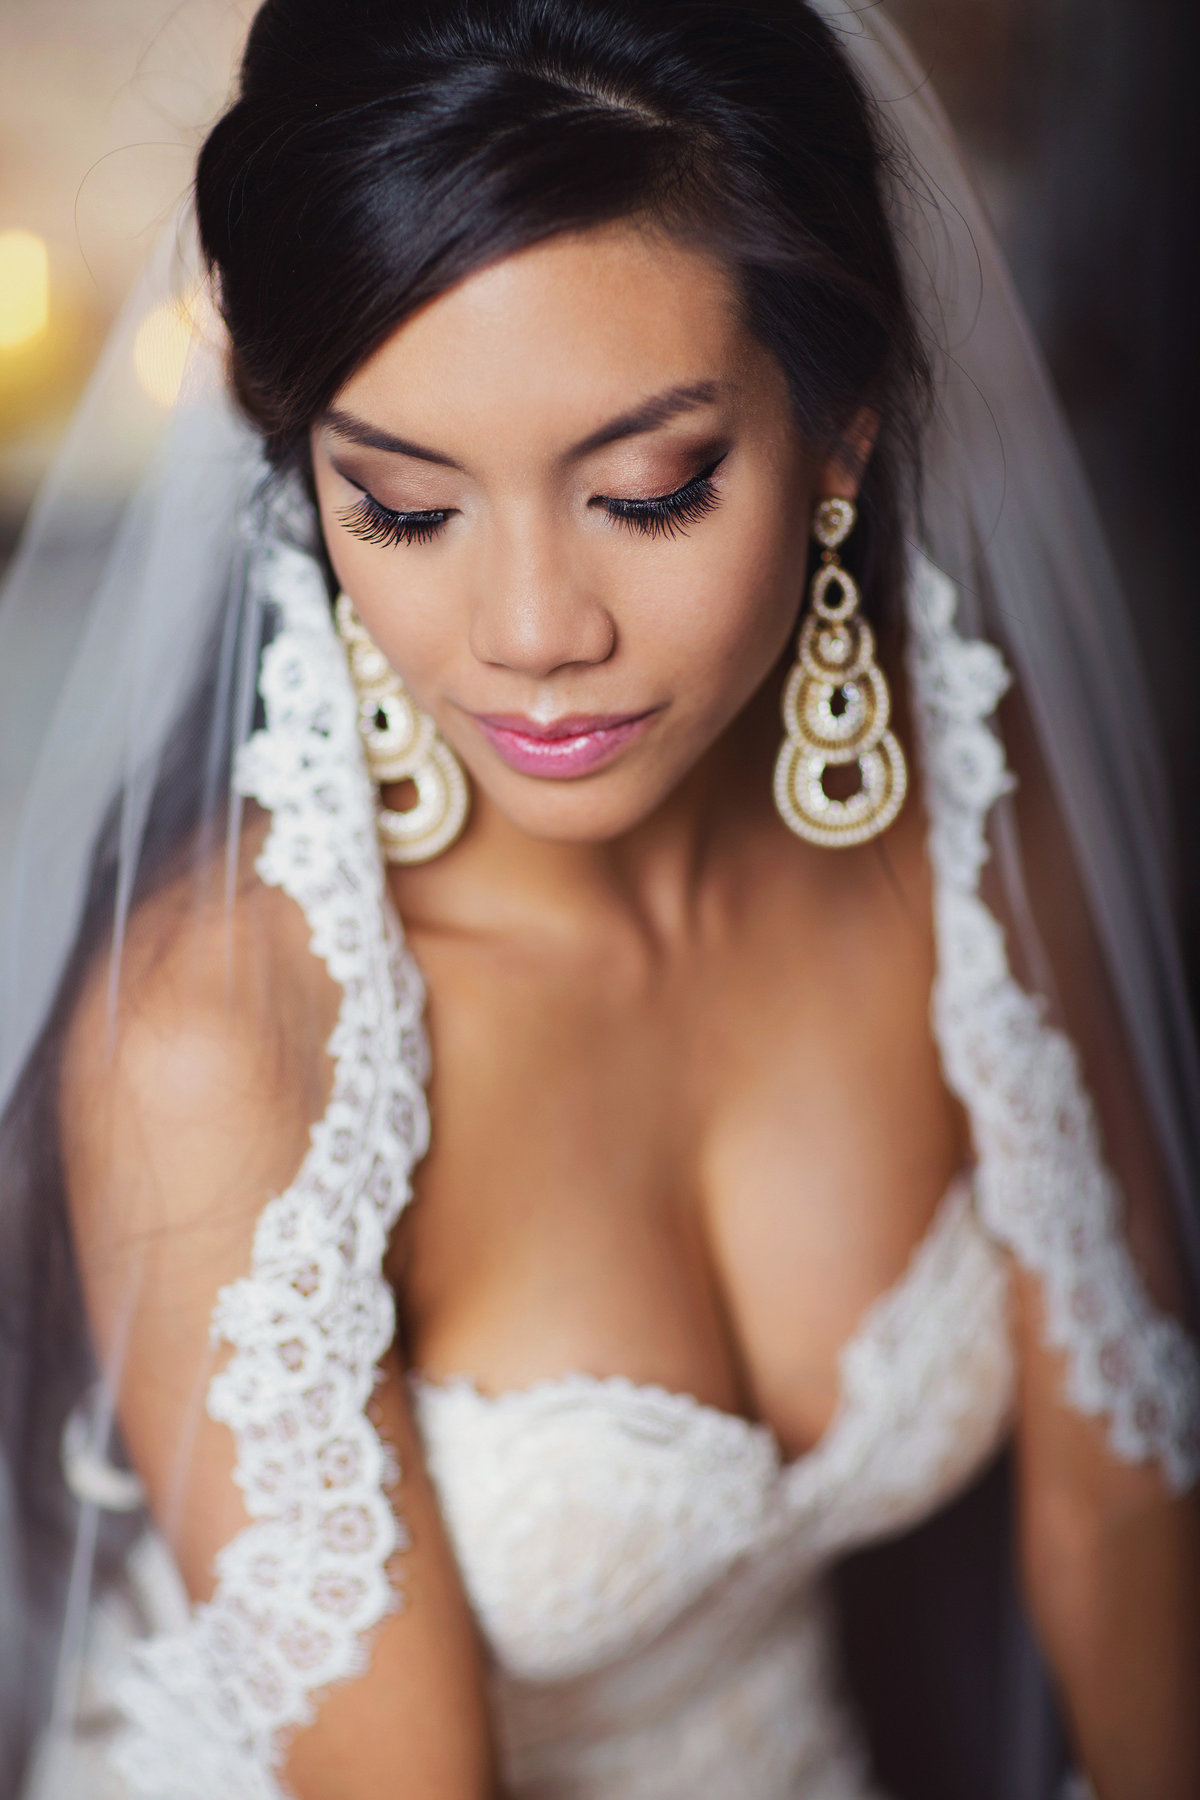 New Orleans Wedding Photographyeditorial_bride00022